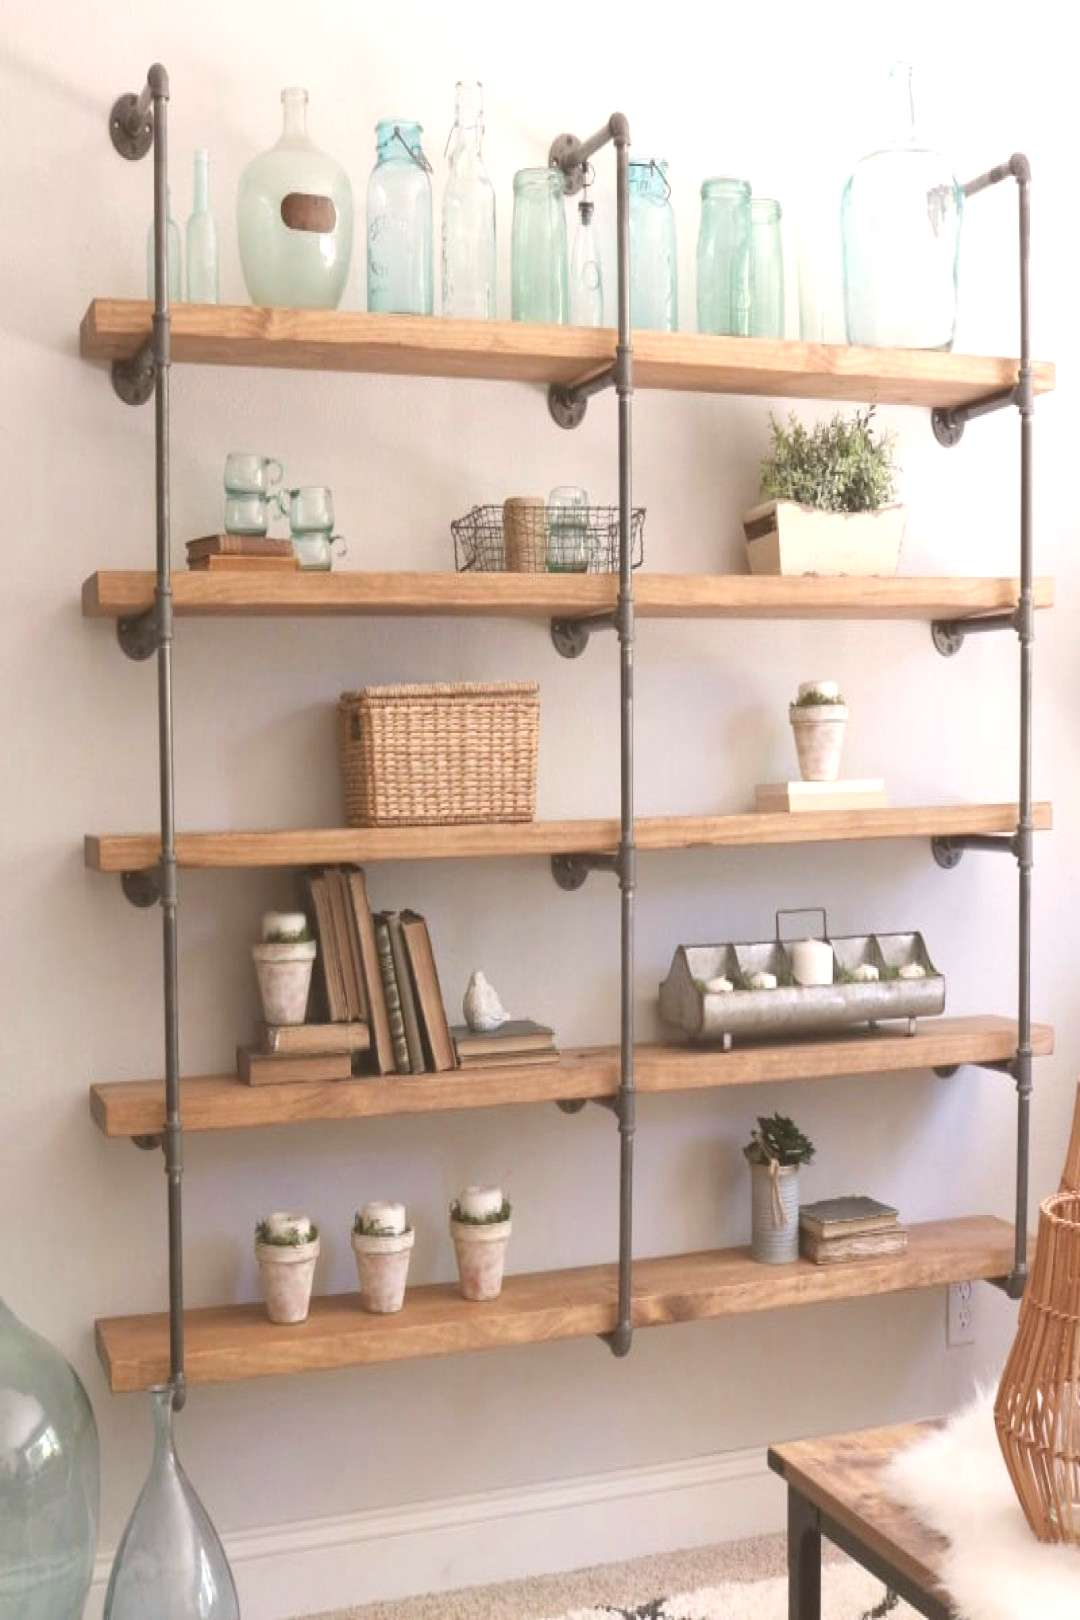 DIY industrial pipe shelves | Step by step tutorial on this shelf fun project